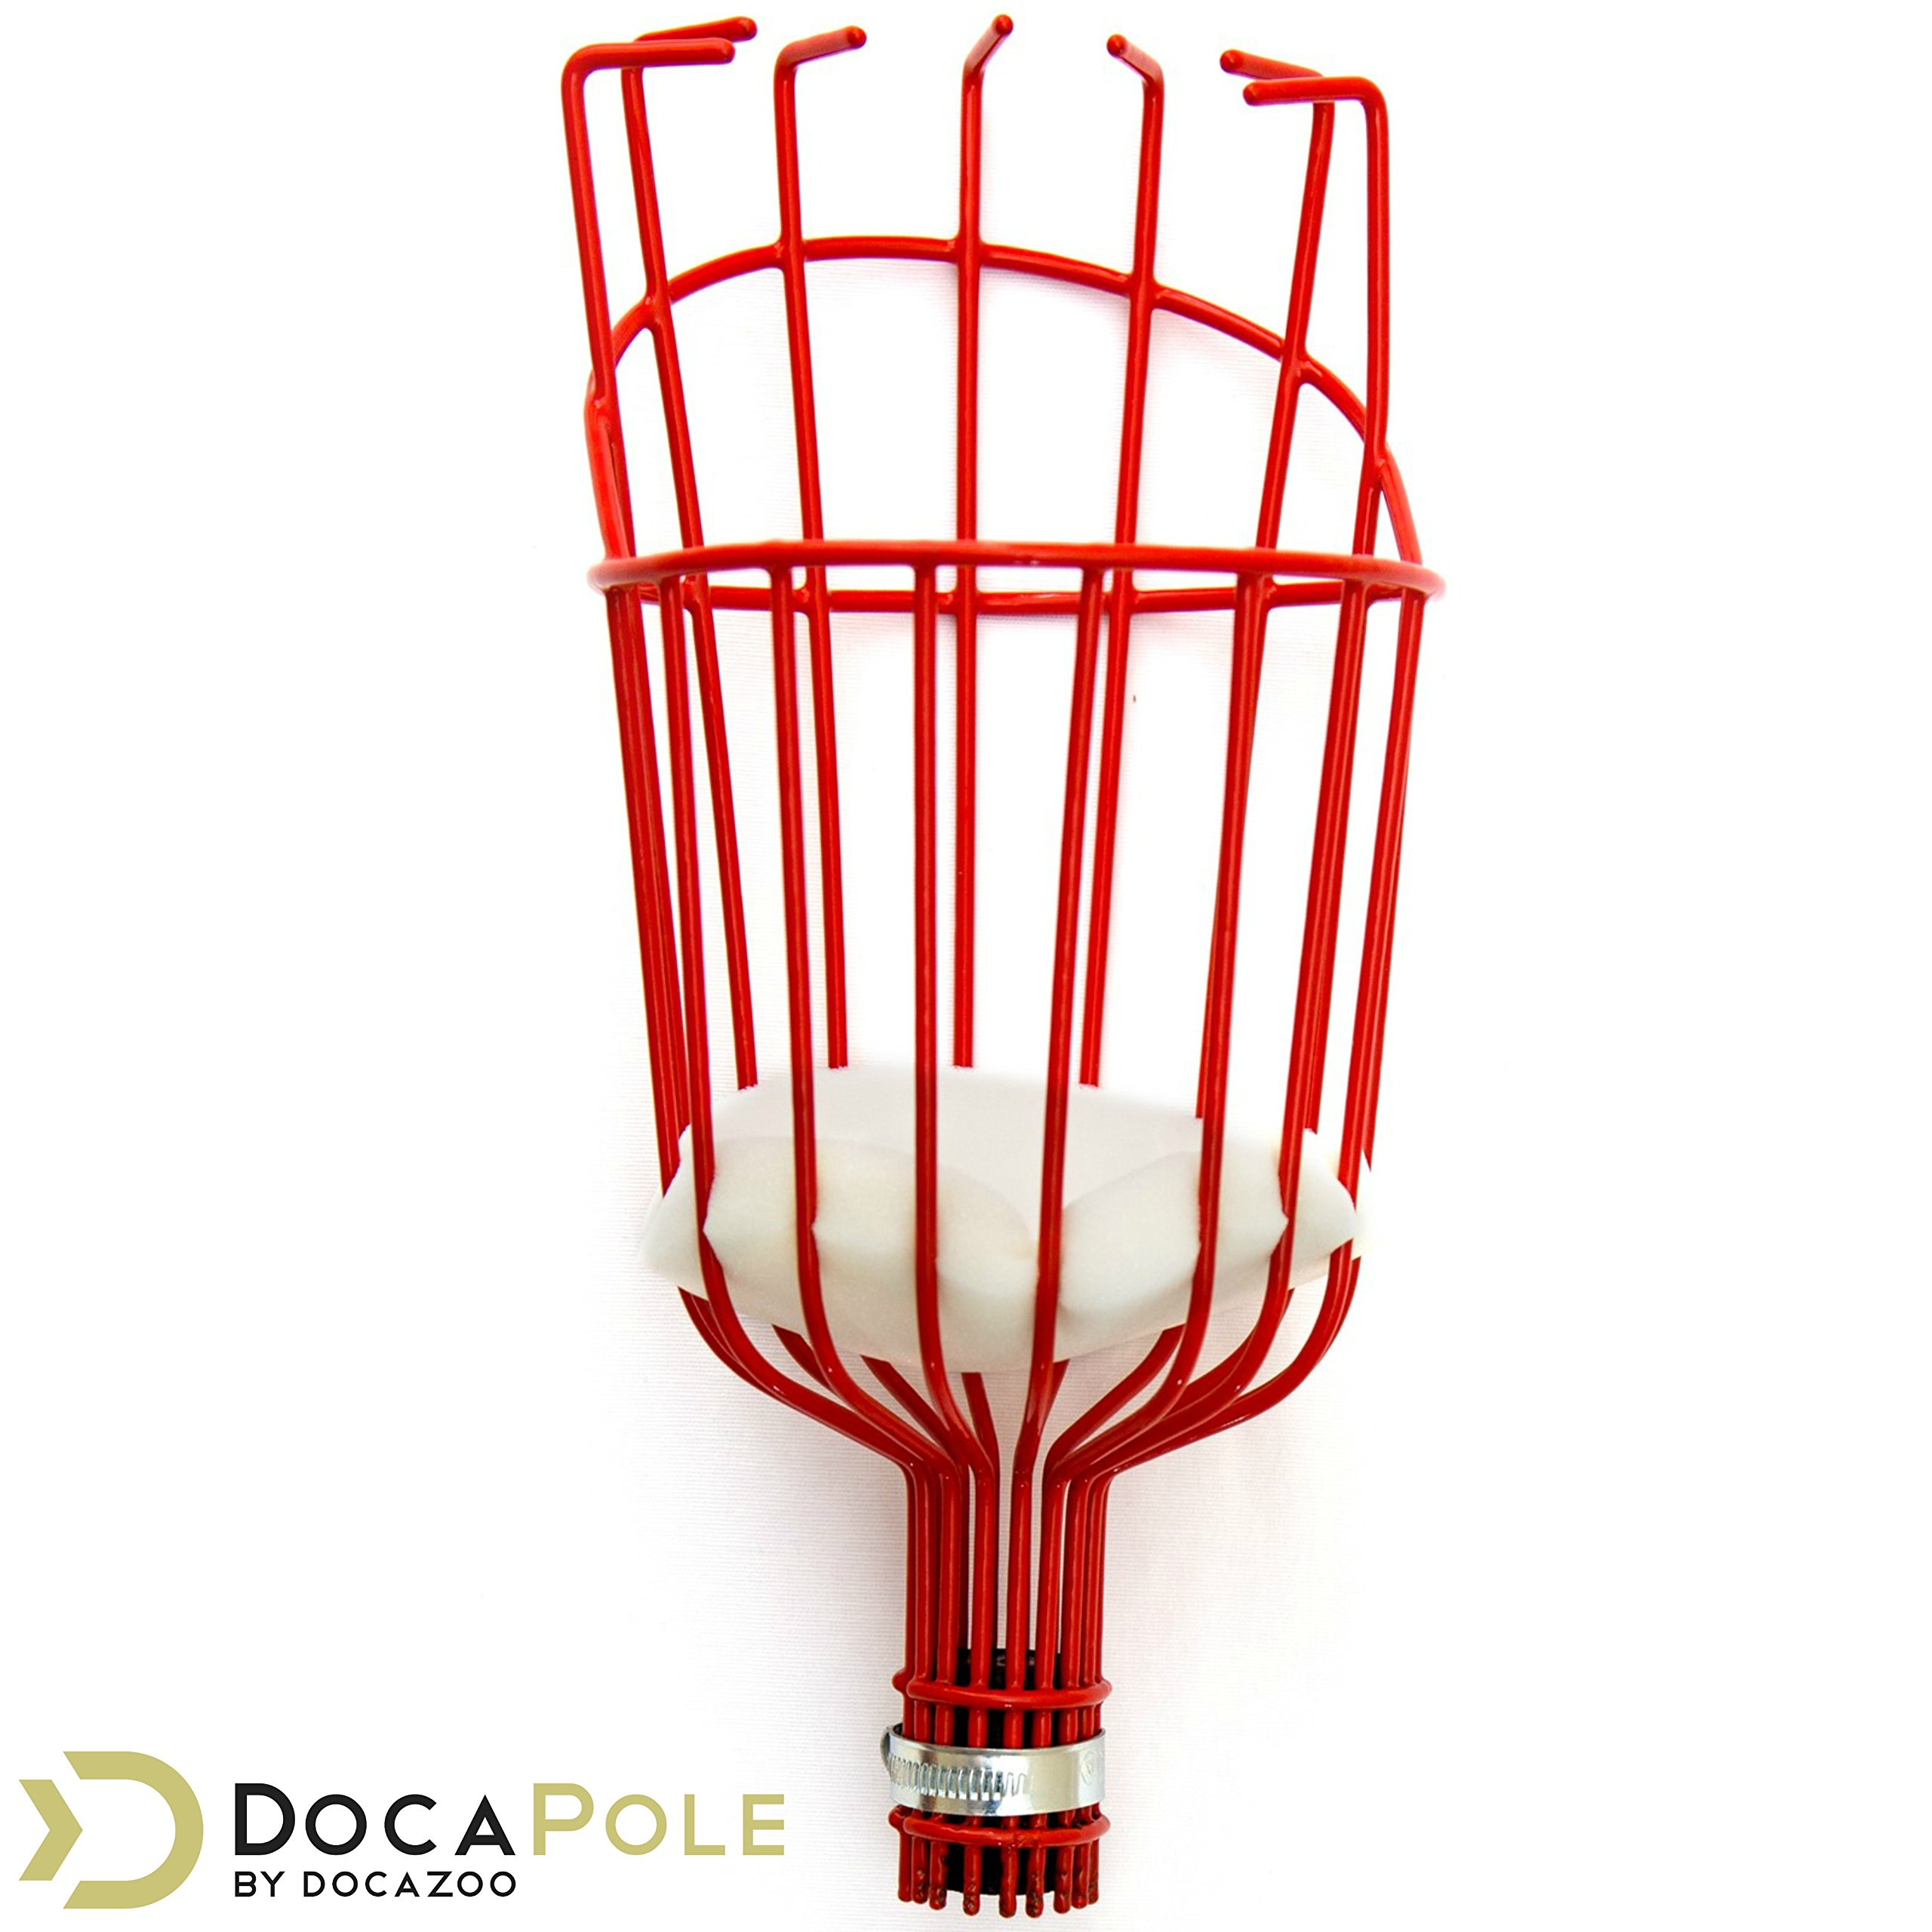 DOCAZOO DocaPole Fruit Picker - Twist-On Fruit Picker Tool for an Extension Pole or Telescopic Pole // Fruit Picker Pole // Ideal for Apple Picking, Avocados, and Other Fruit // DocaPole Attachment by DOCAZOO